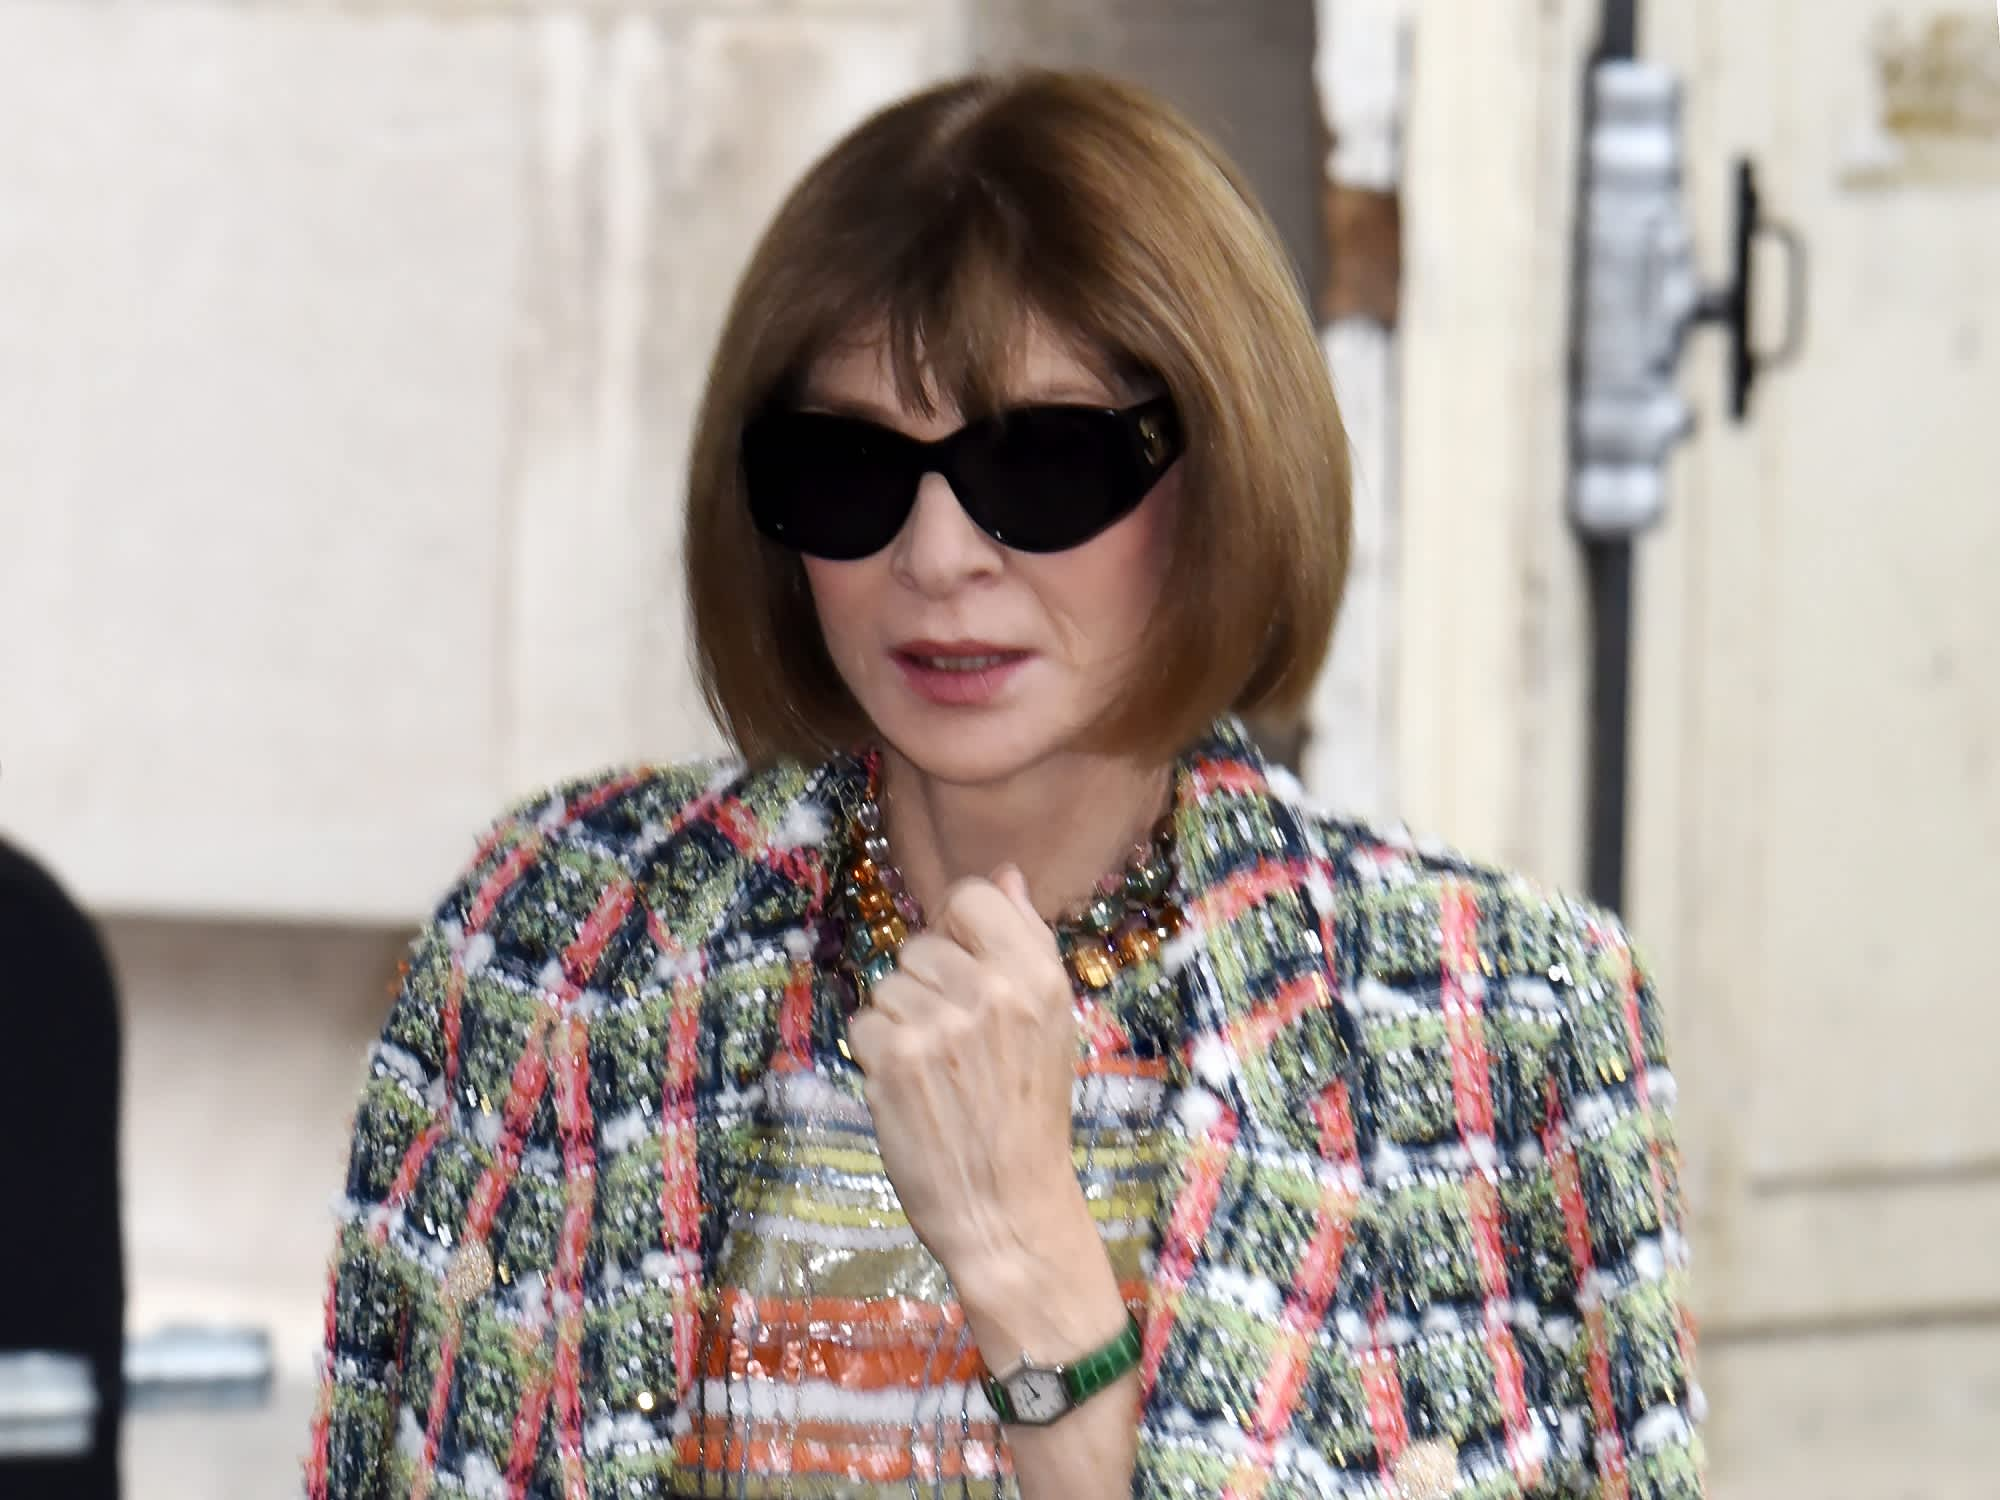 Vogue's Anna Wintour: Daily routine includes a 4 a.m. wake up call and her 'magic box of tricks'